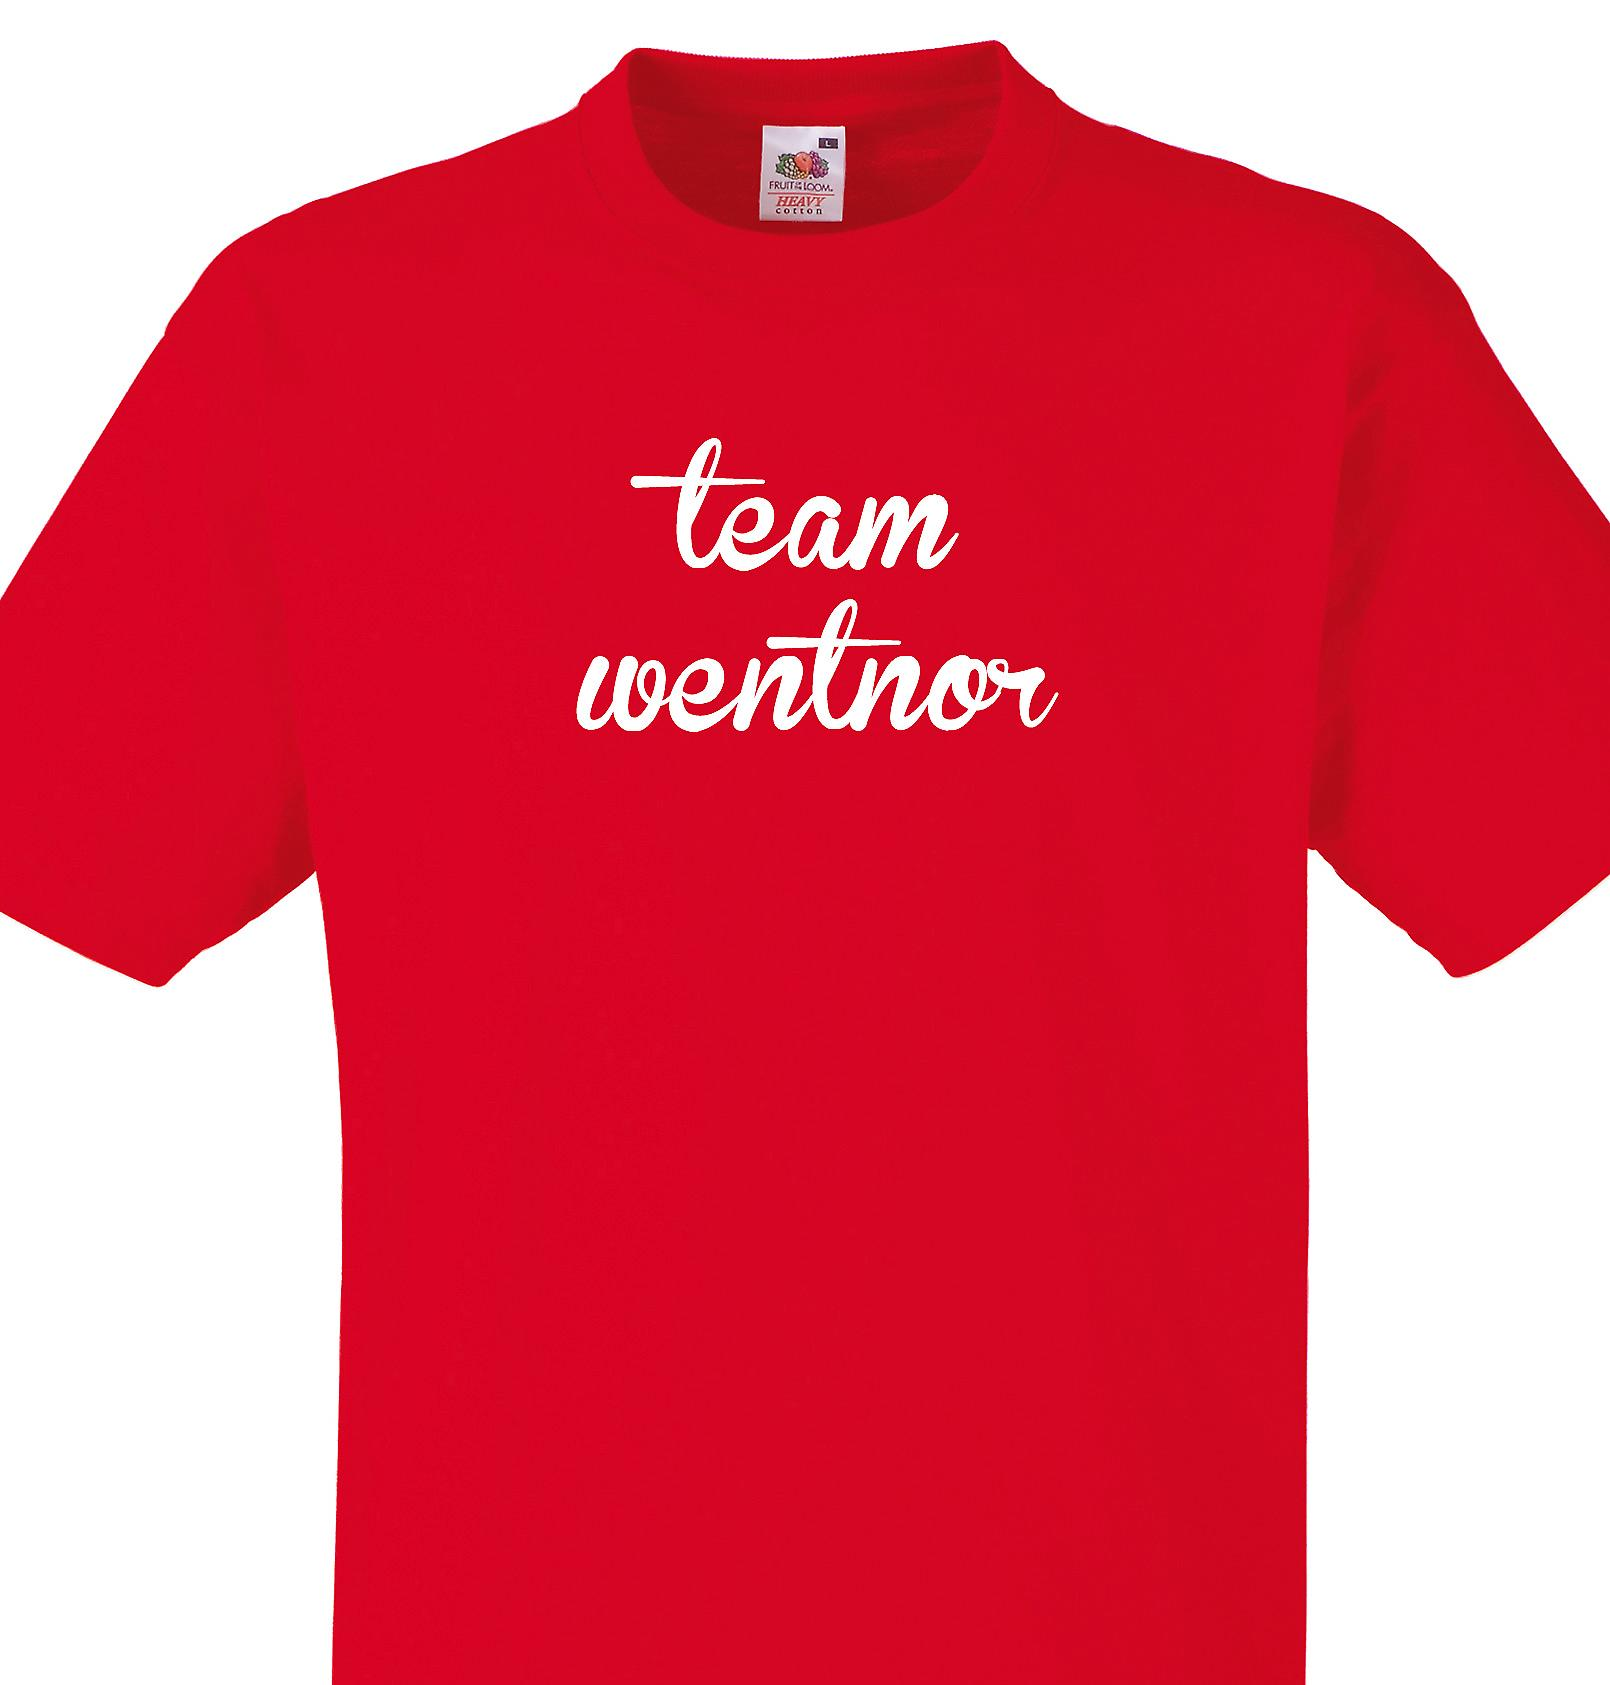 Team Wentnor Red T shirt